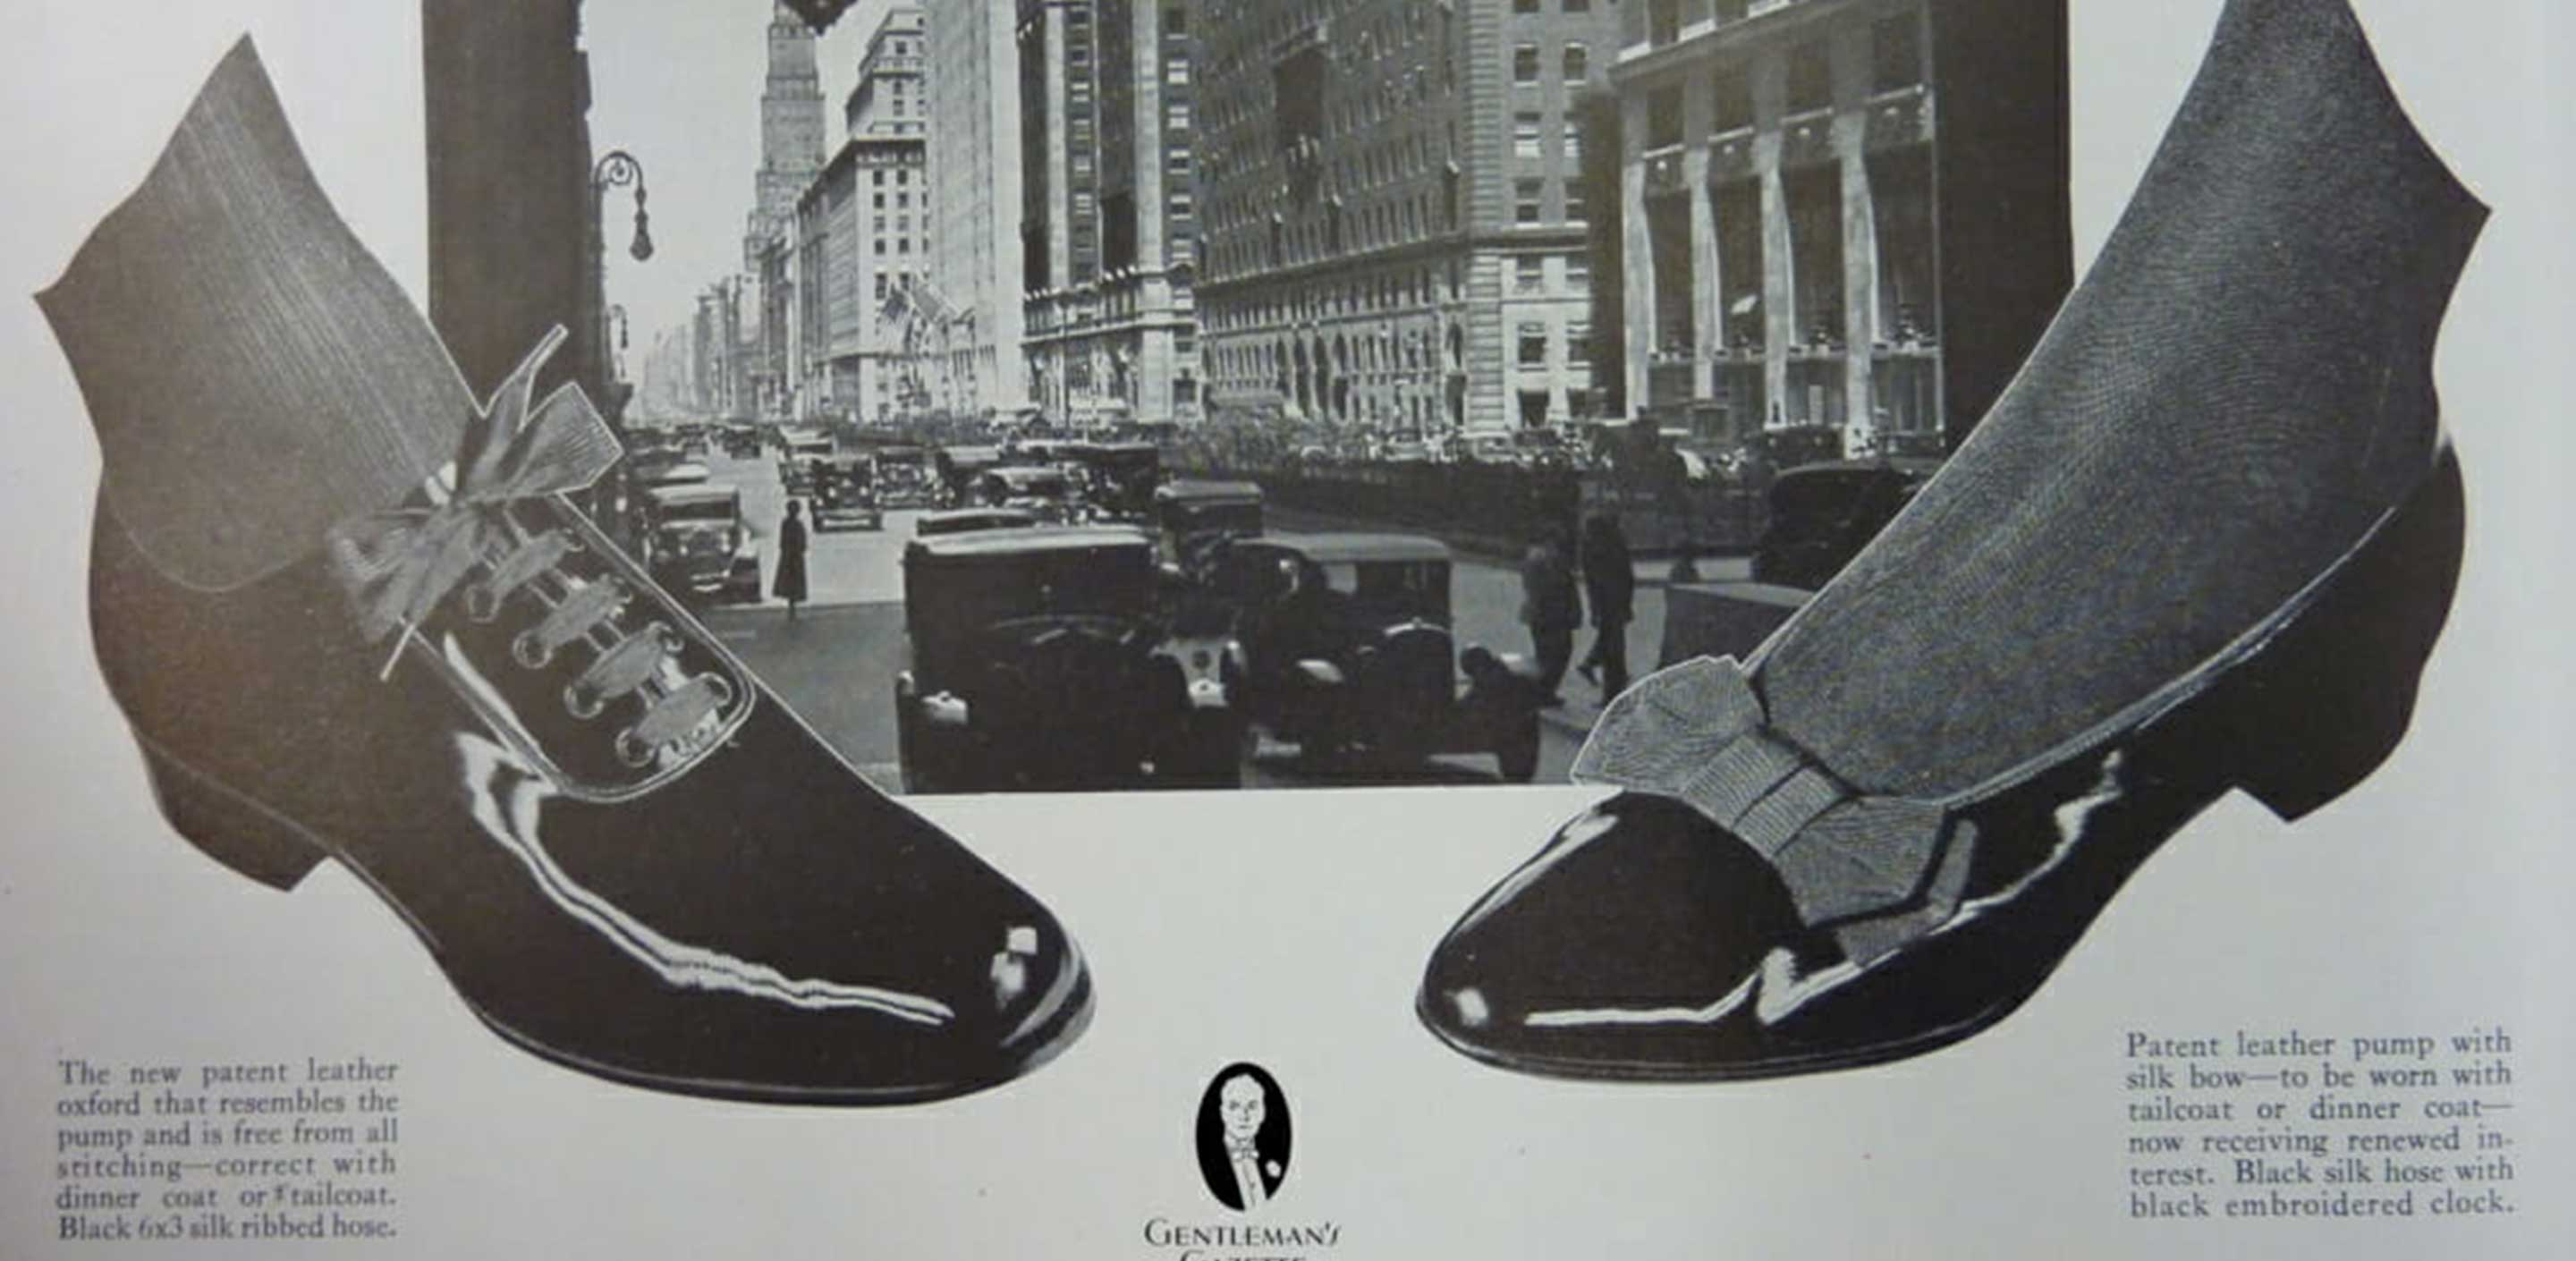 History Of Patent Leather